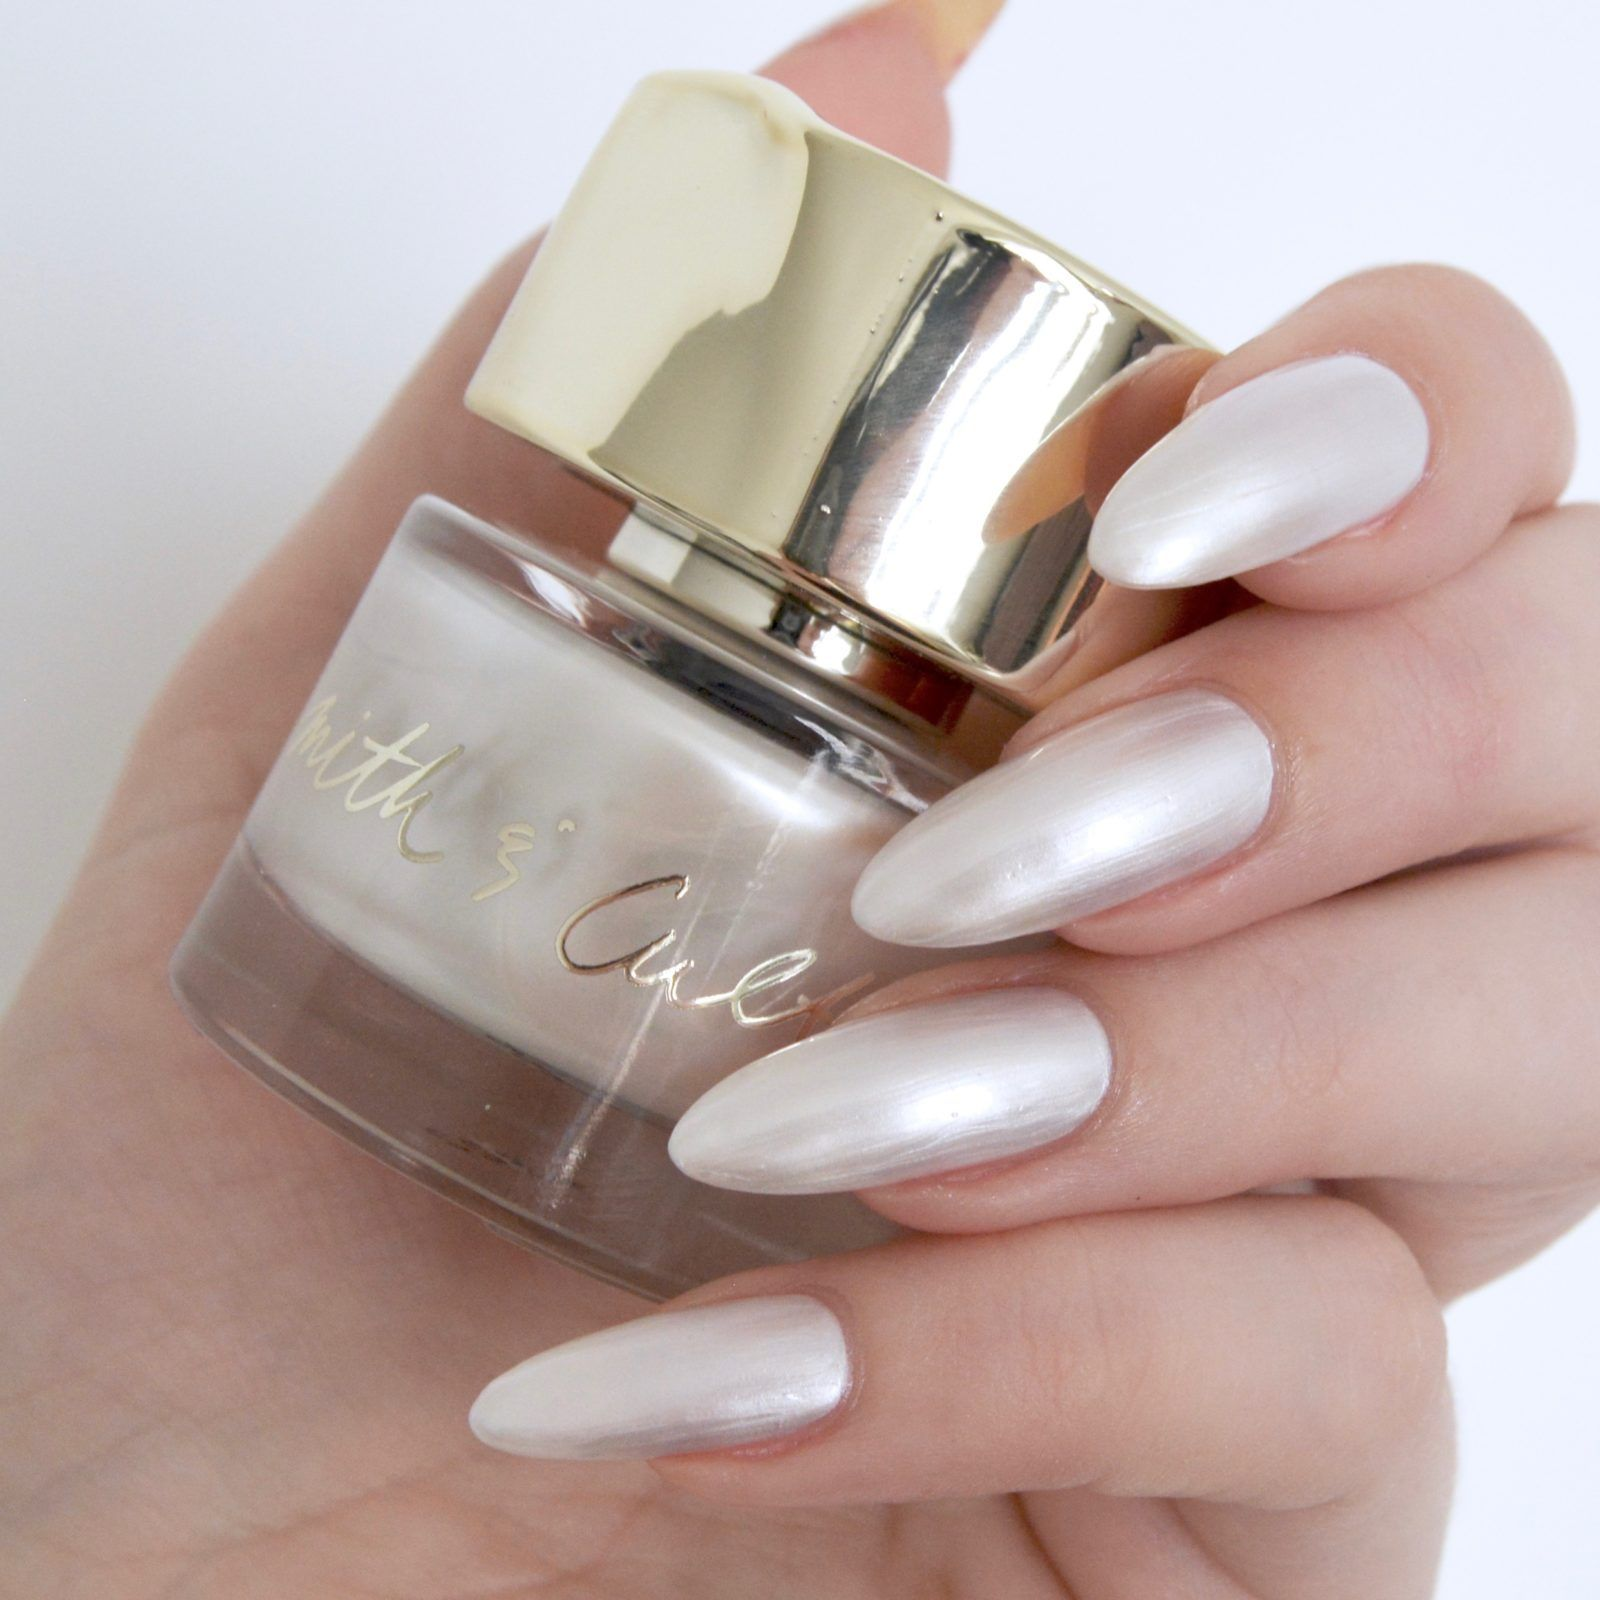 nail spring with smith & cult polishes